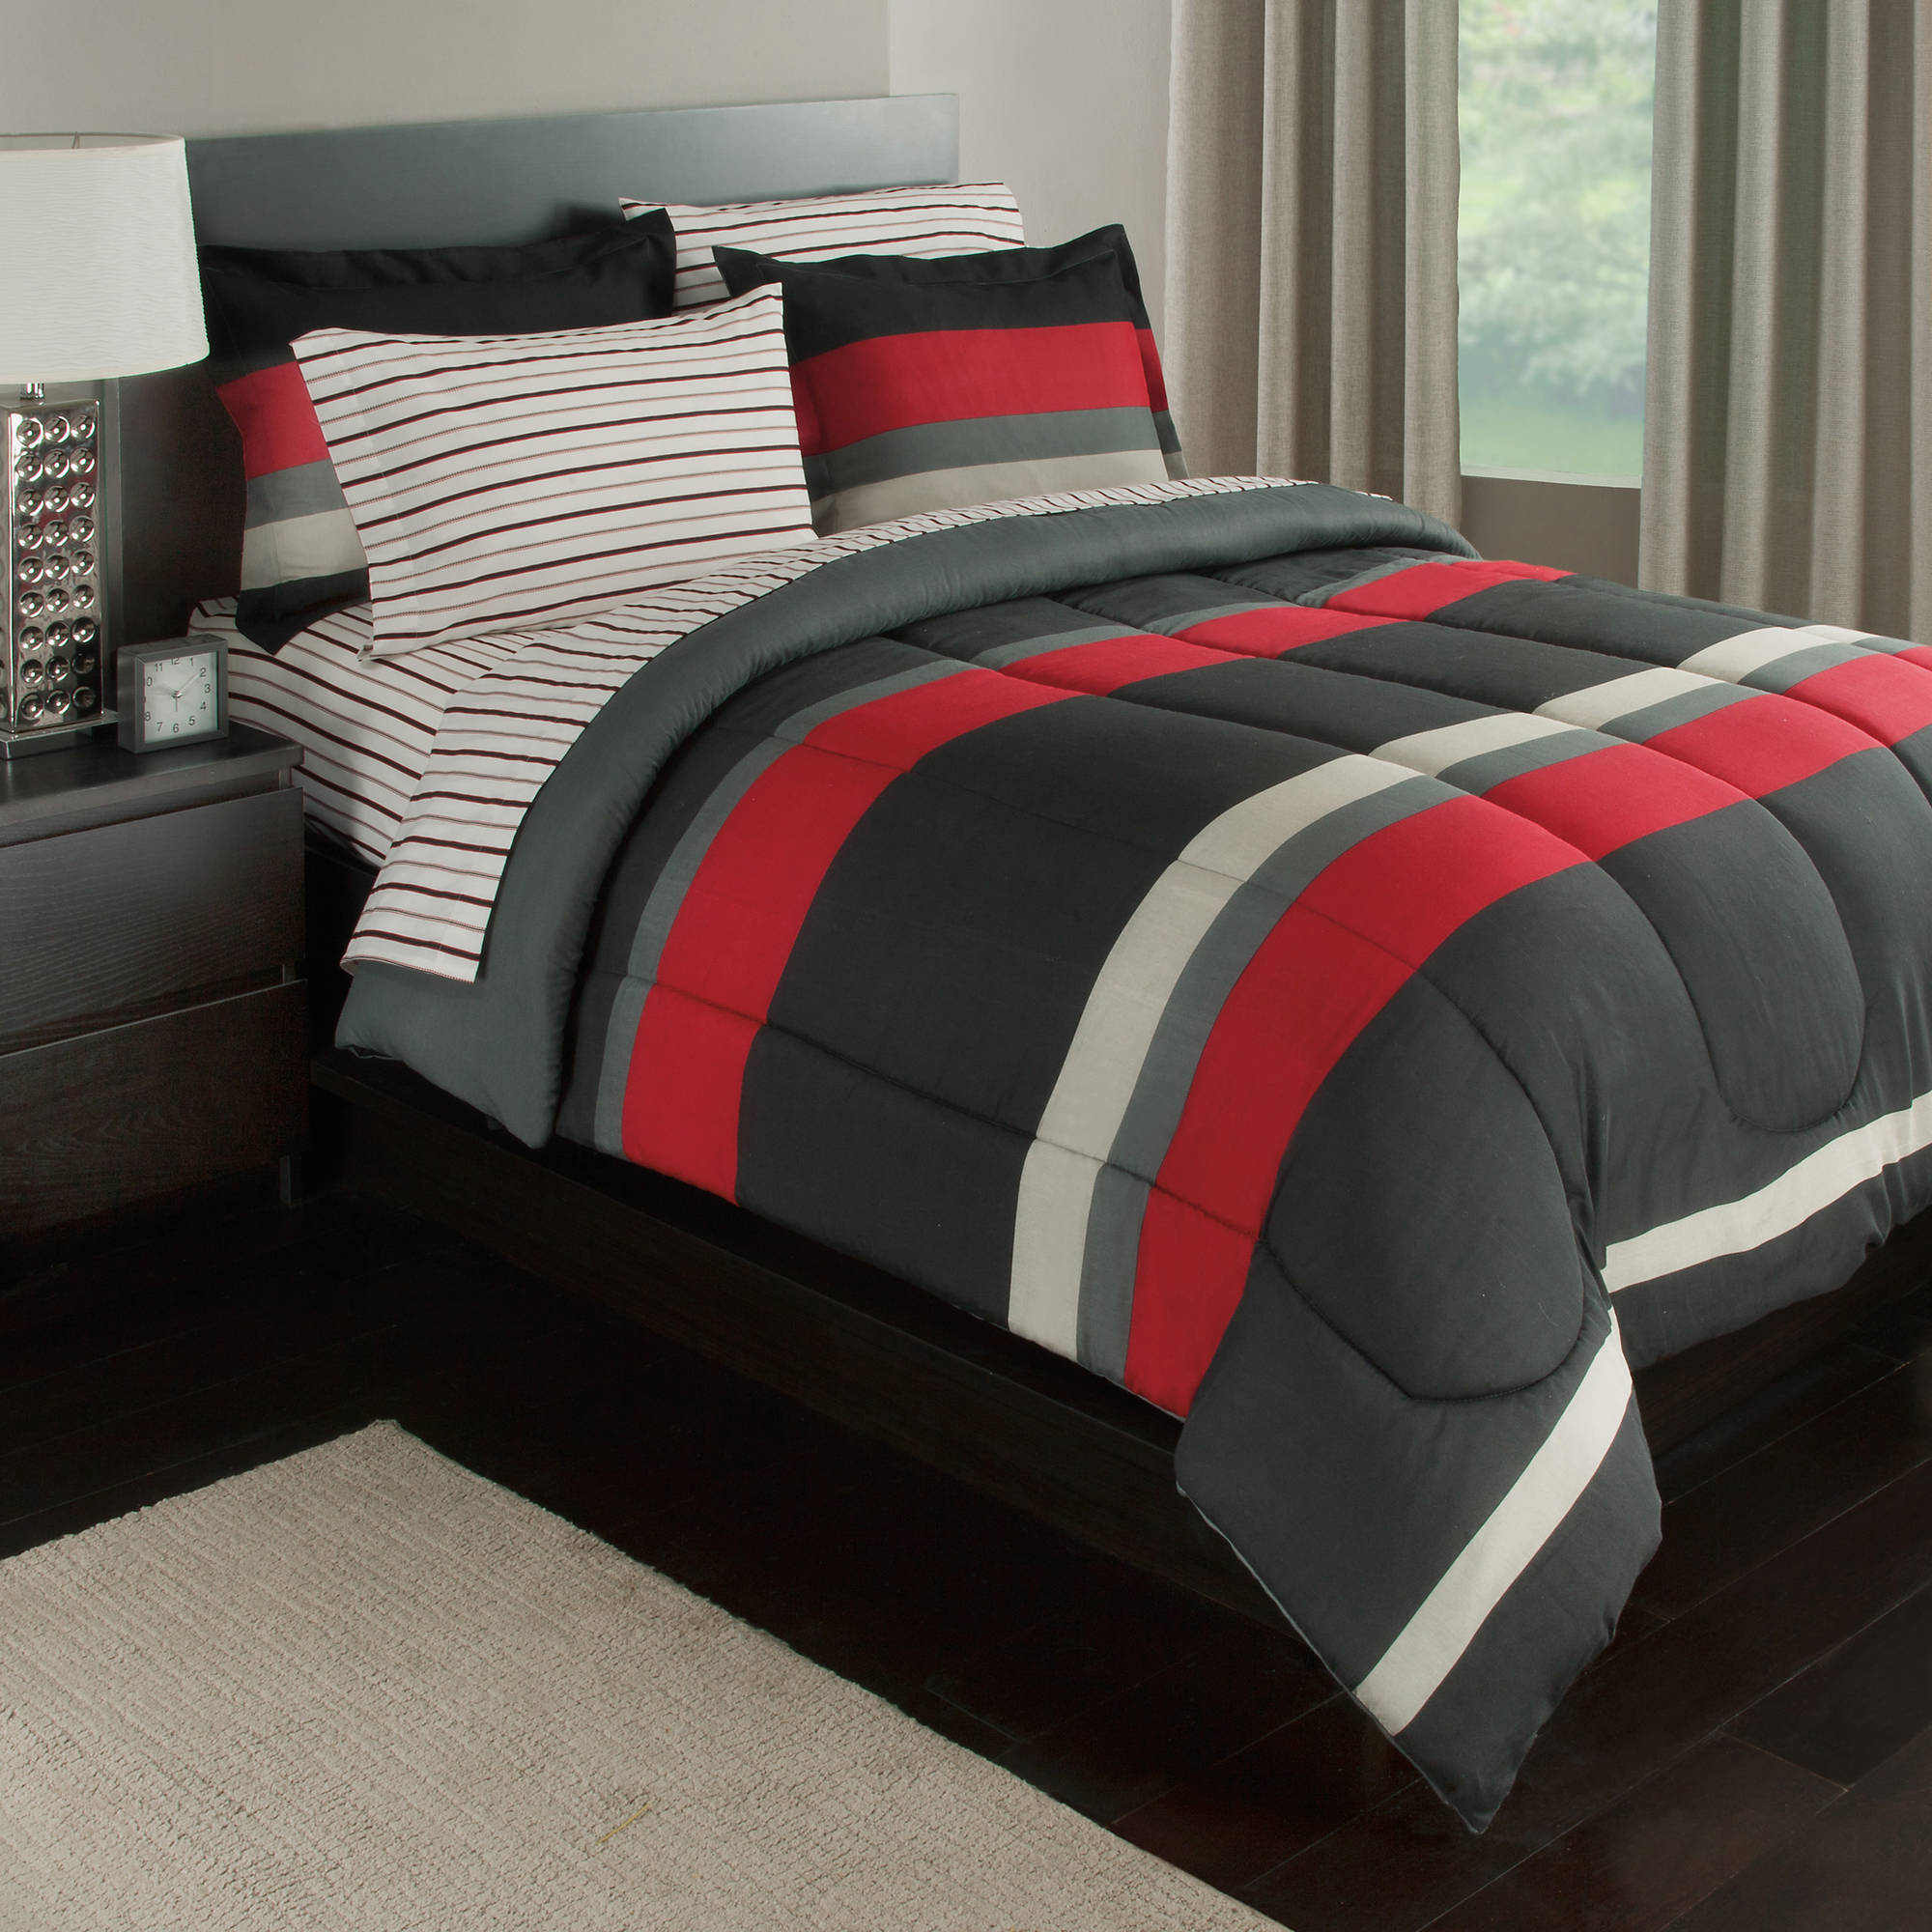 Beau Black, Gray U0026 Red Stripes Boys Teen Full Comforter Set (7 Piece Bed In A  Bag)   Walmart.com